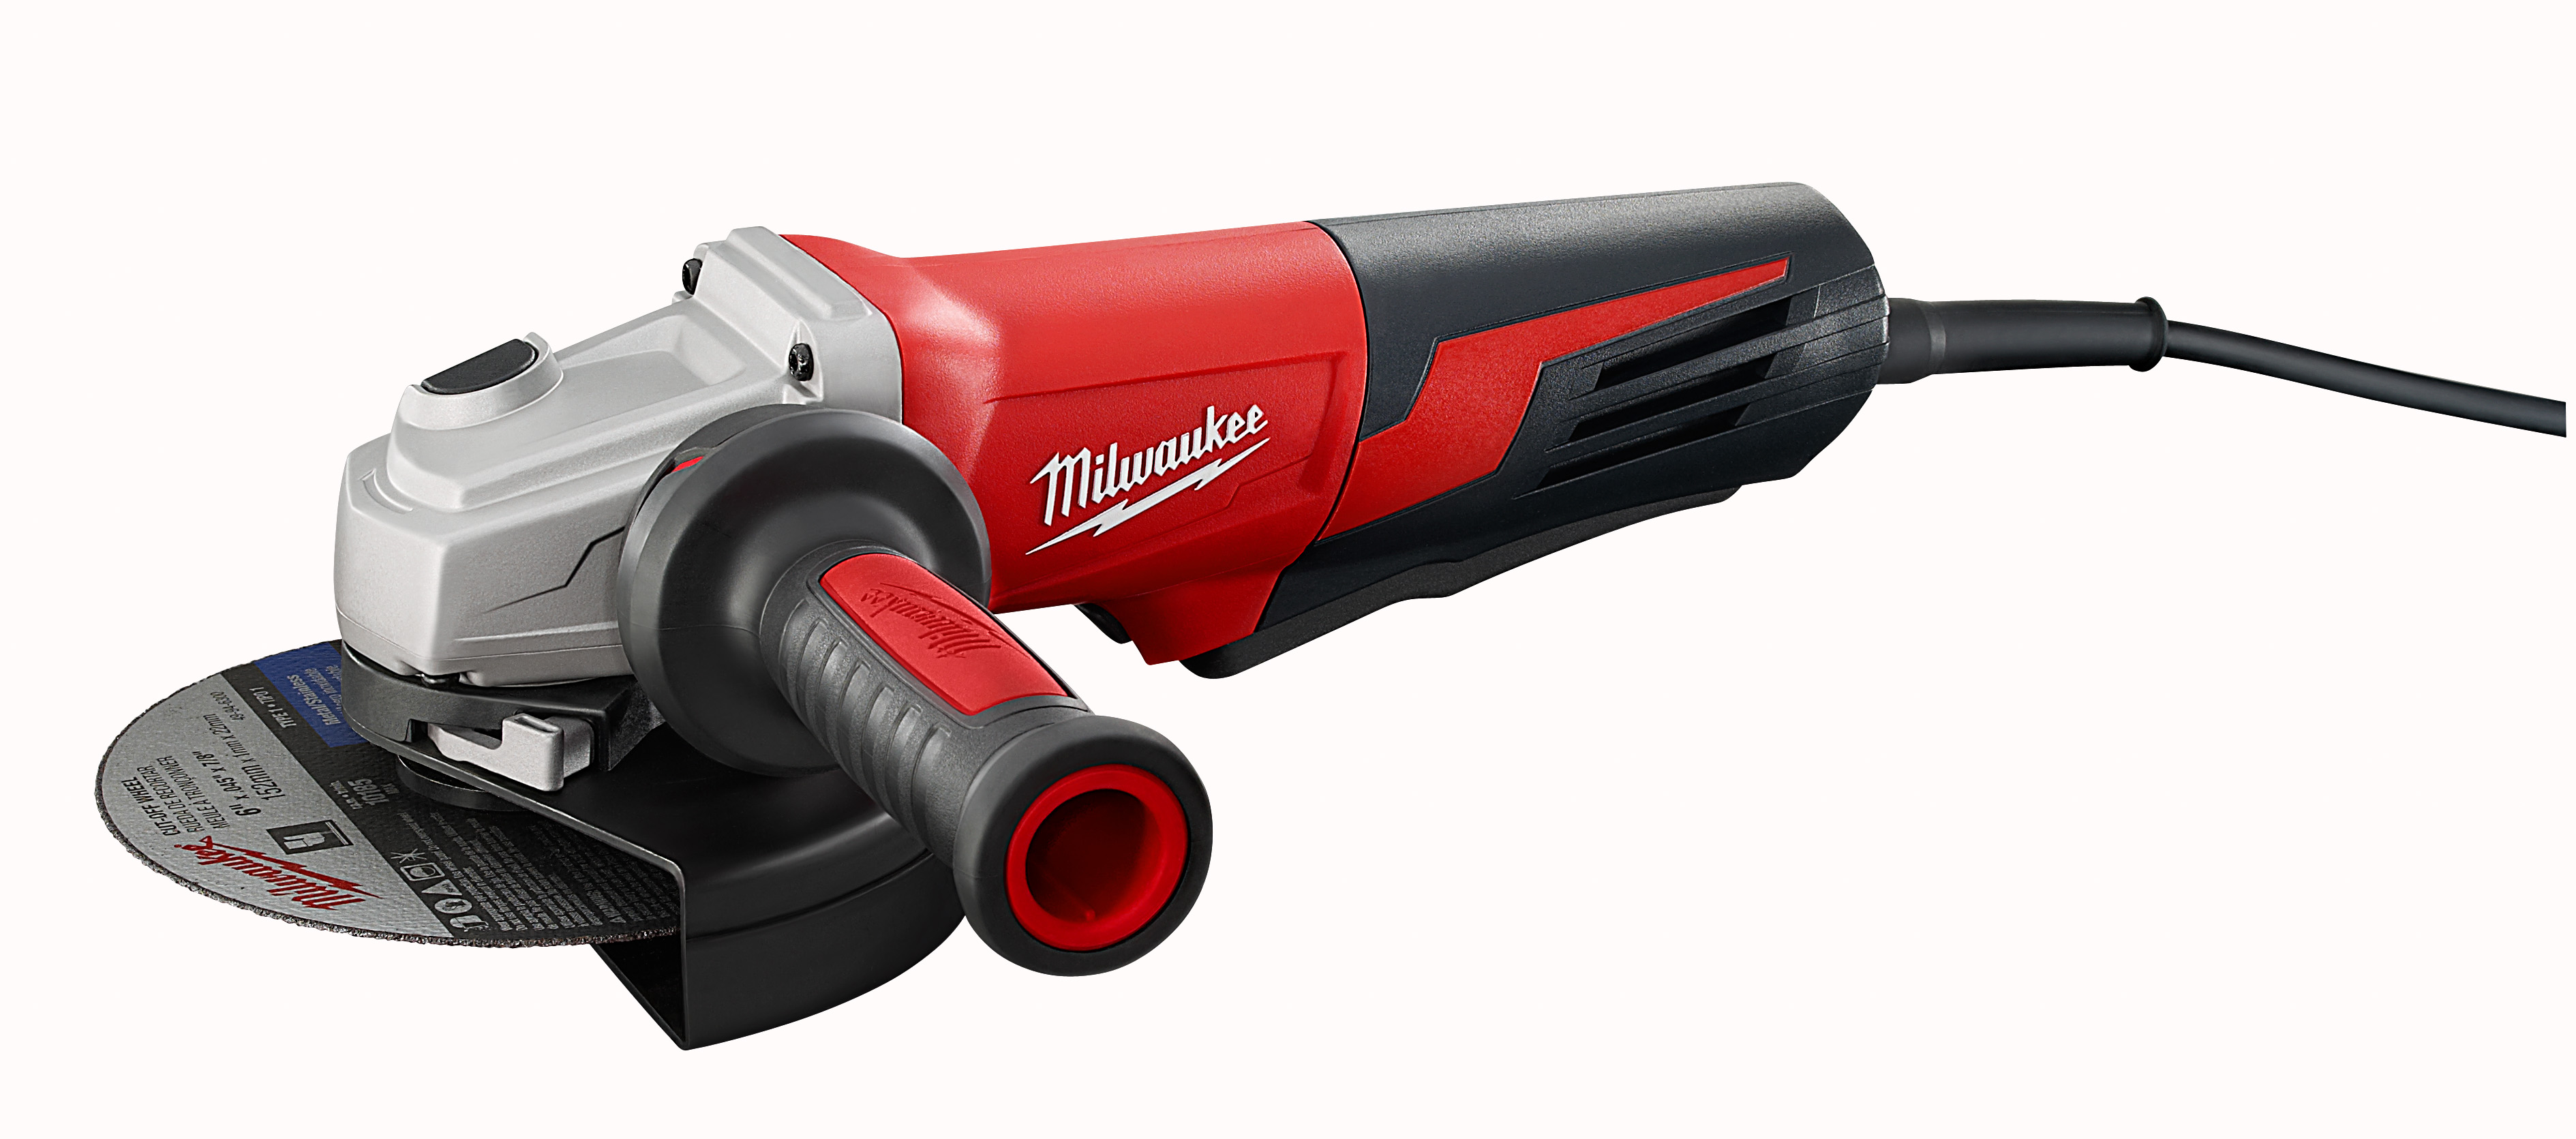 "Milwaukee 6161-31 13 Amp 6"" Small Angle Grinder Paddle, No-Lock"